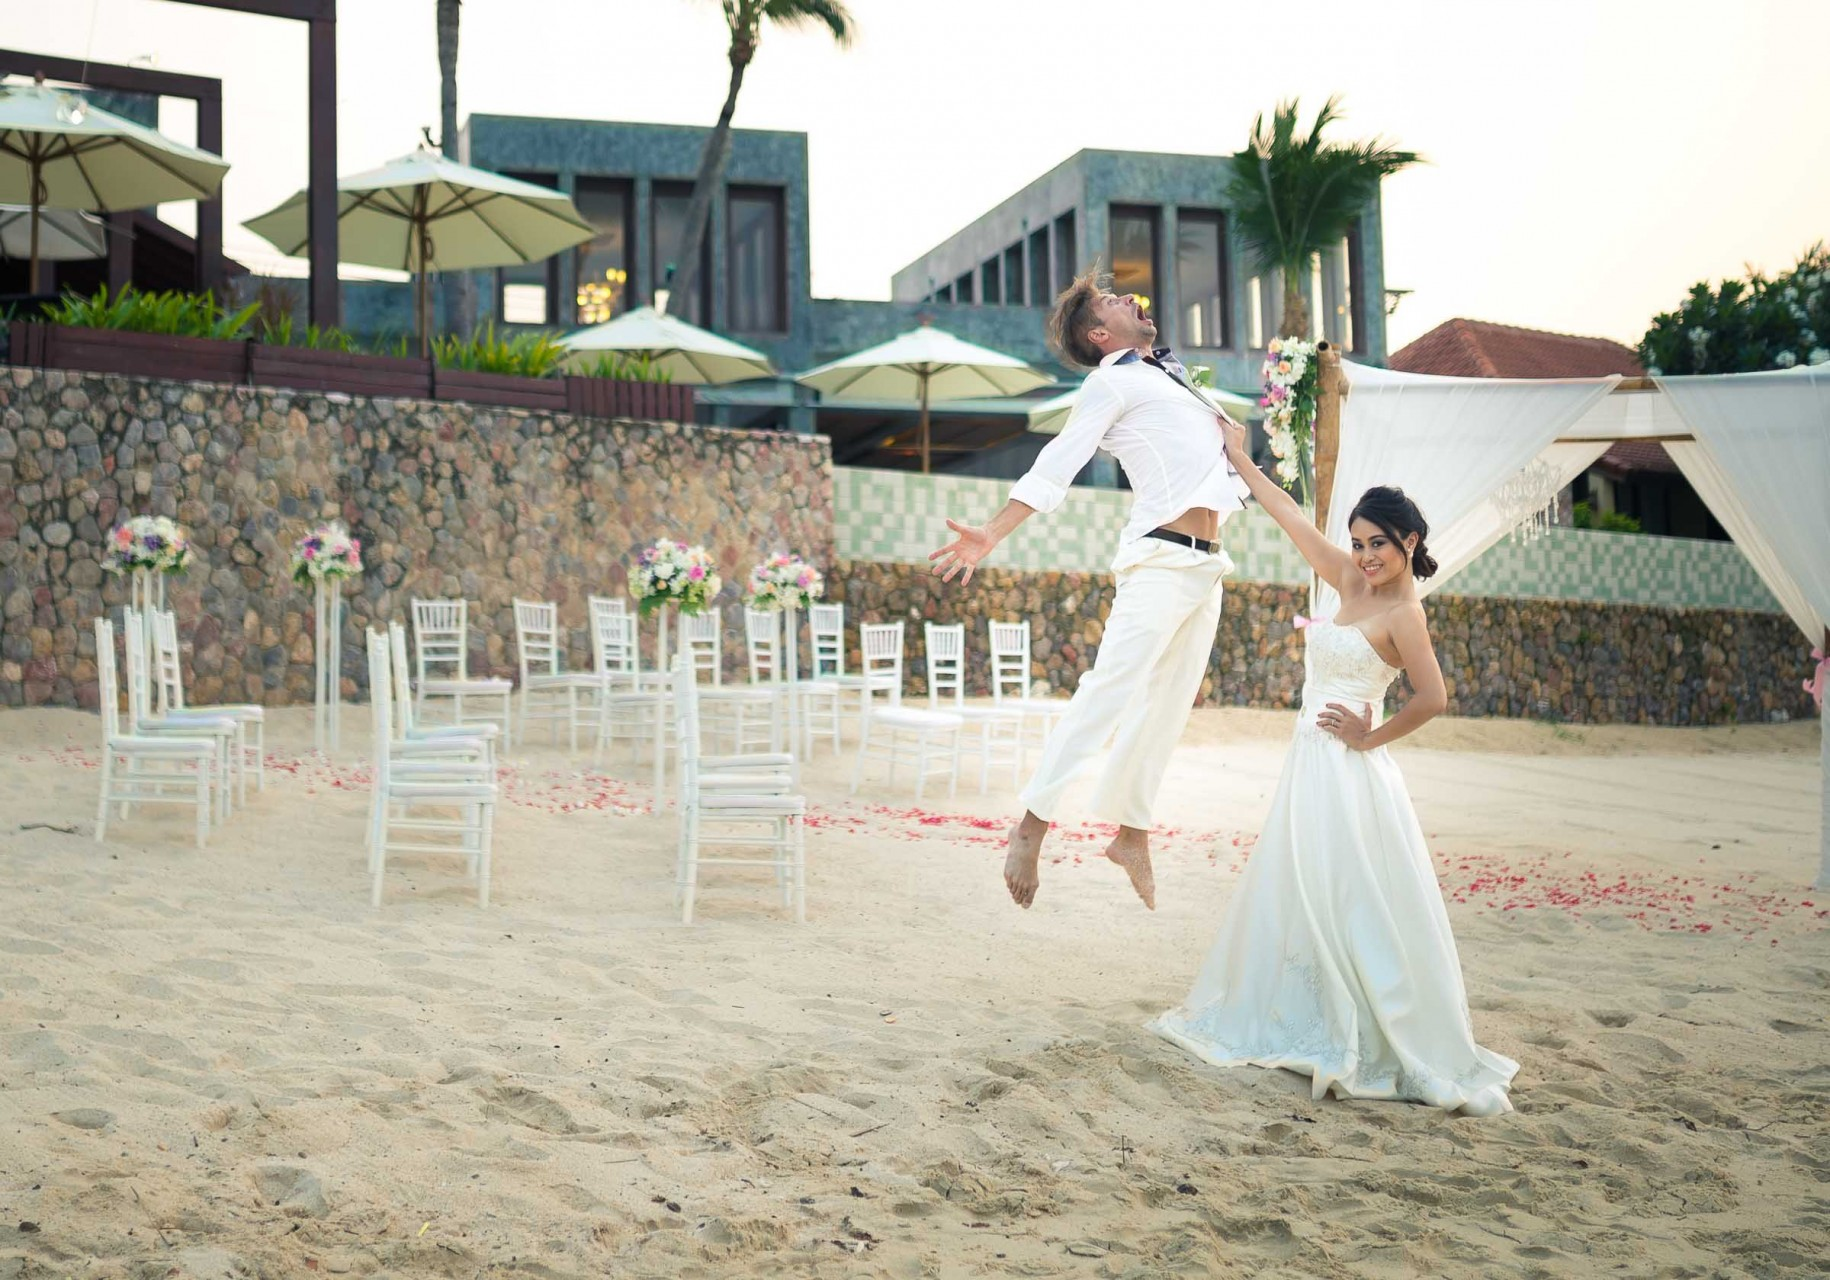 Beach Wedding Photography in Thailand | Best Professional Wedding Photographer Bangkok